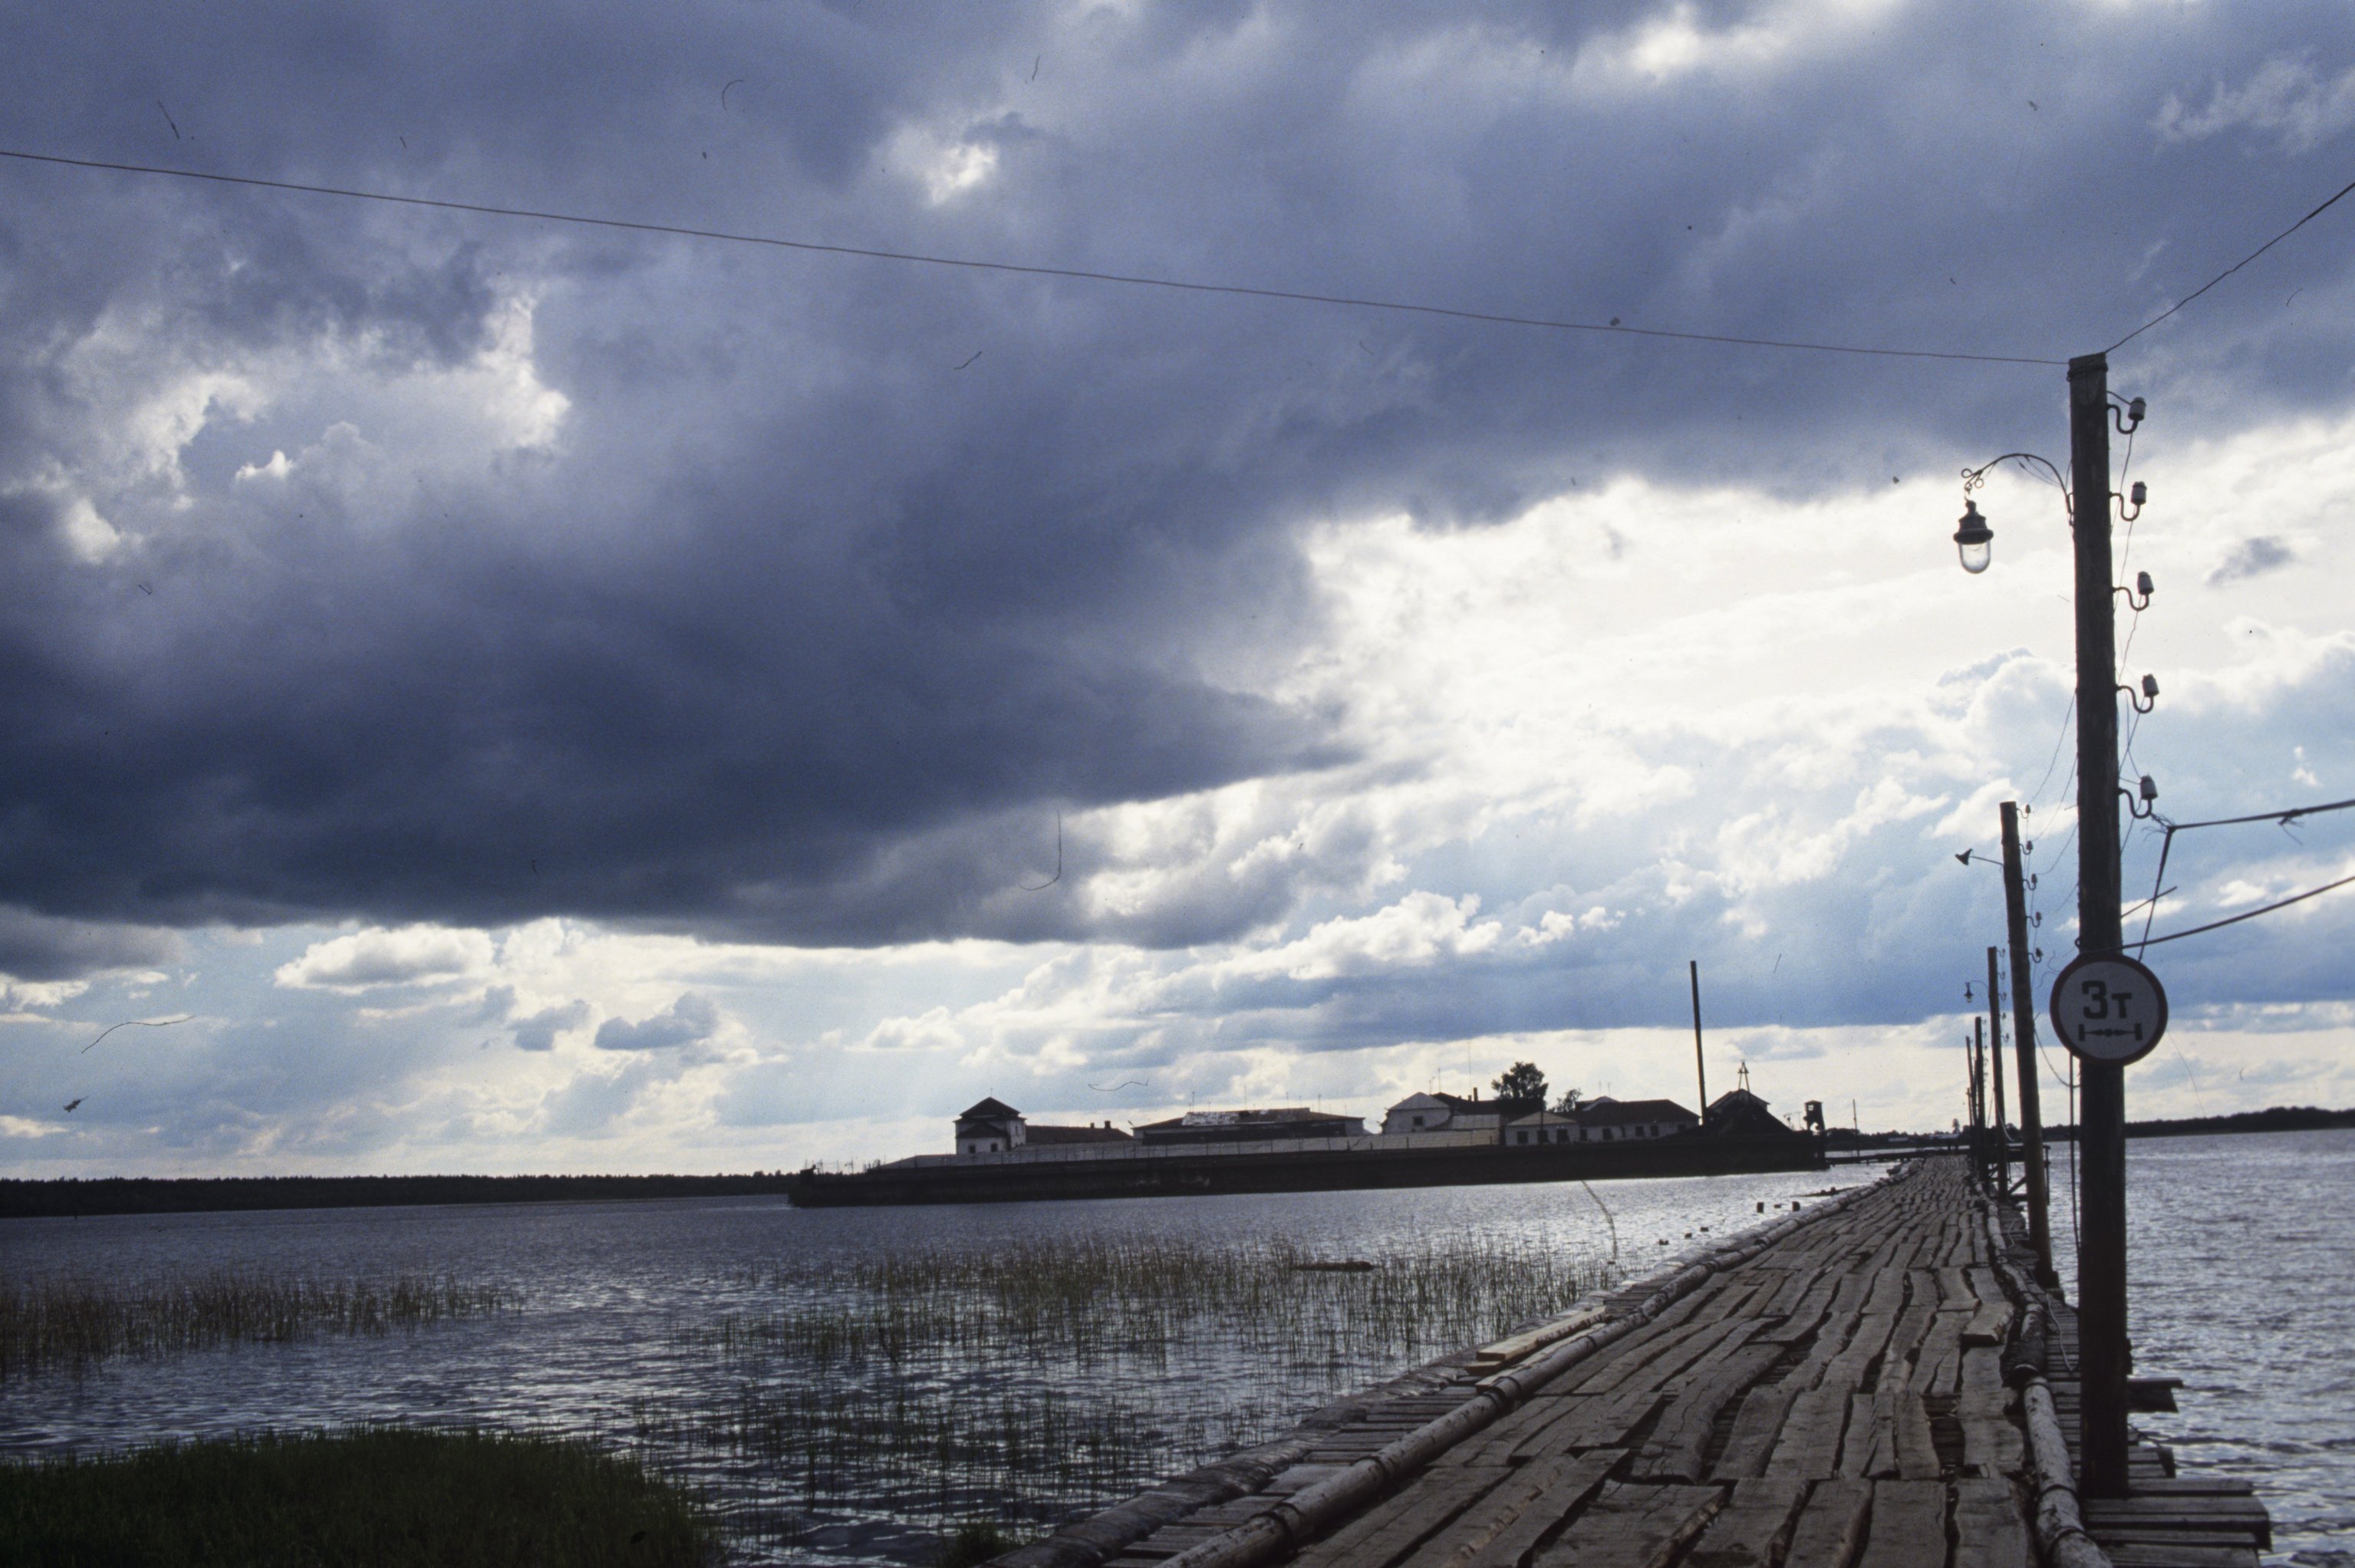 ITK-5 corrective labor cell prison of maximum security for handicapped is situated in Krasny (Ognenny) Island, Novoozero village, the Belozersky District. (File)